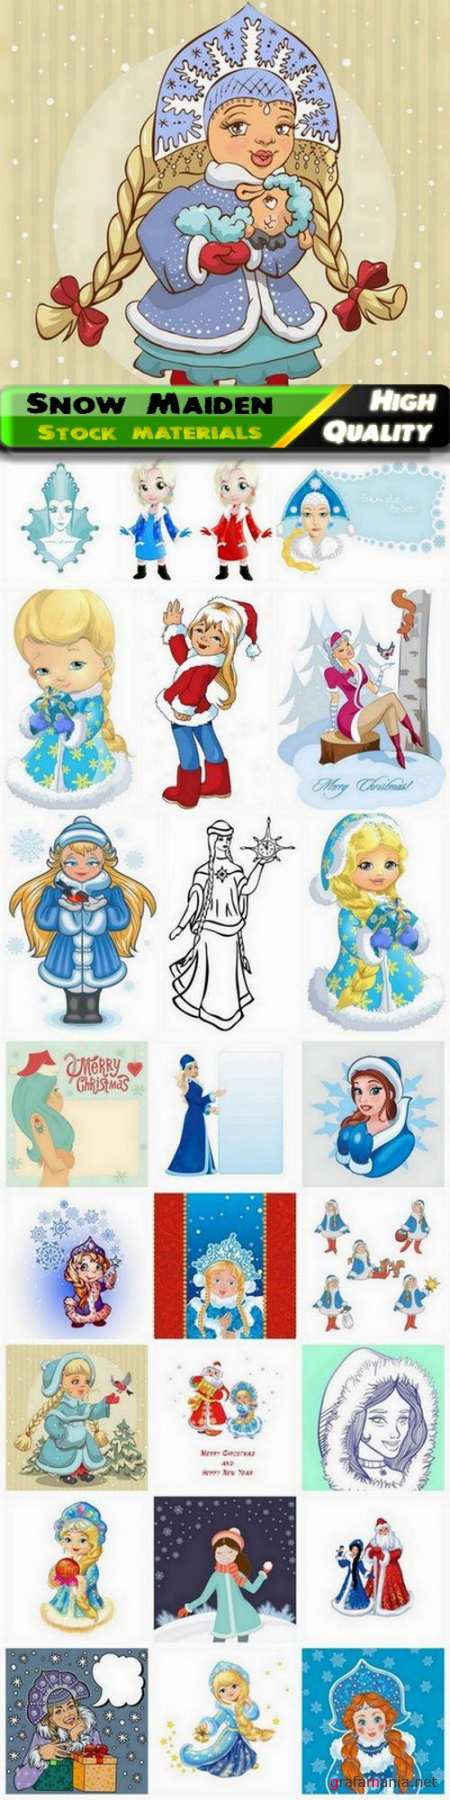 Snow Maiden and Santa Claus for Merry Christmas card - 25 Eps